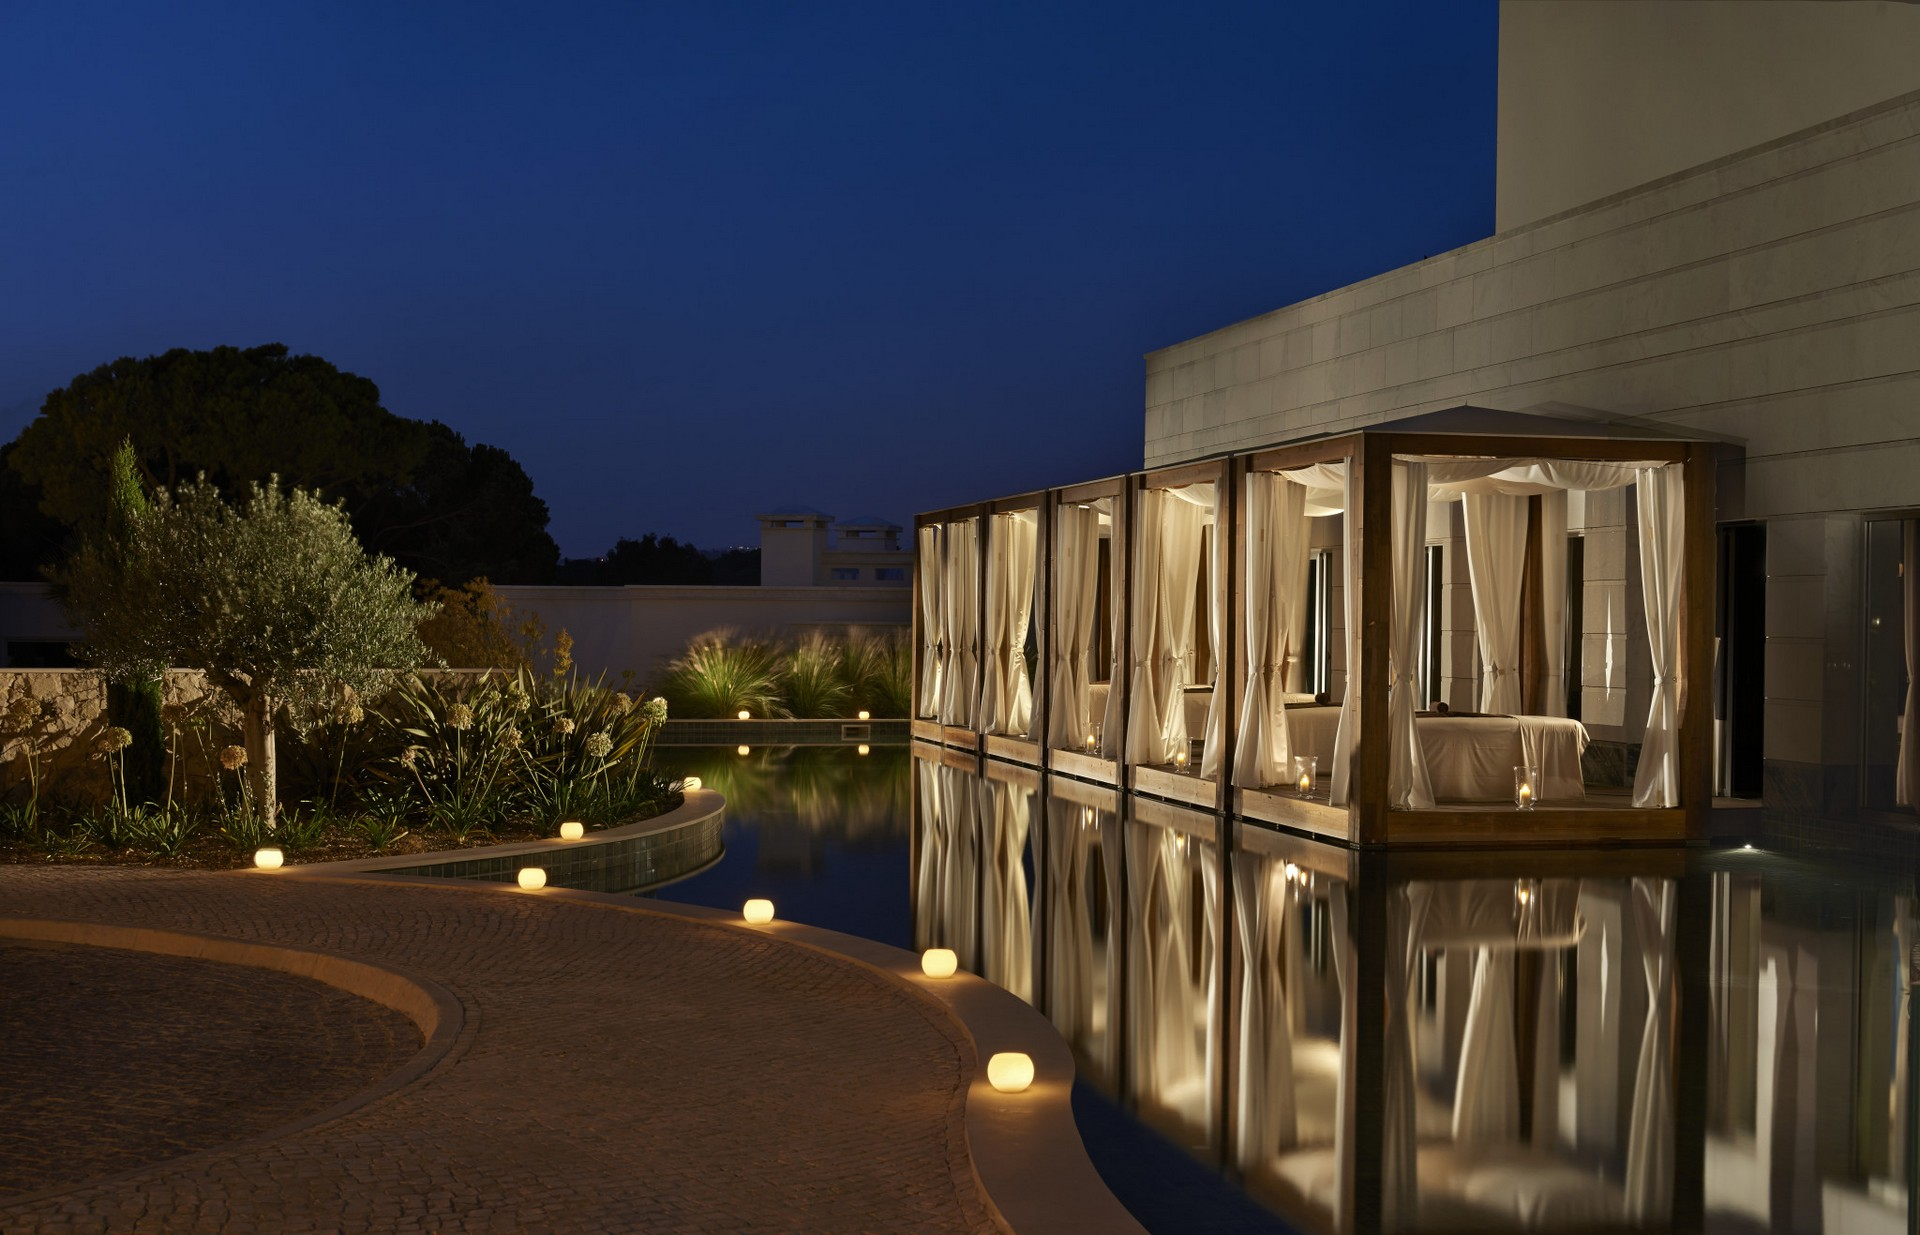 Conrad Algarve conrad algarve Conrad Algarve Is a Luxury Paradise Conrad Algarve 6